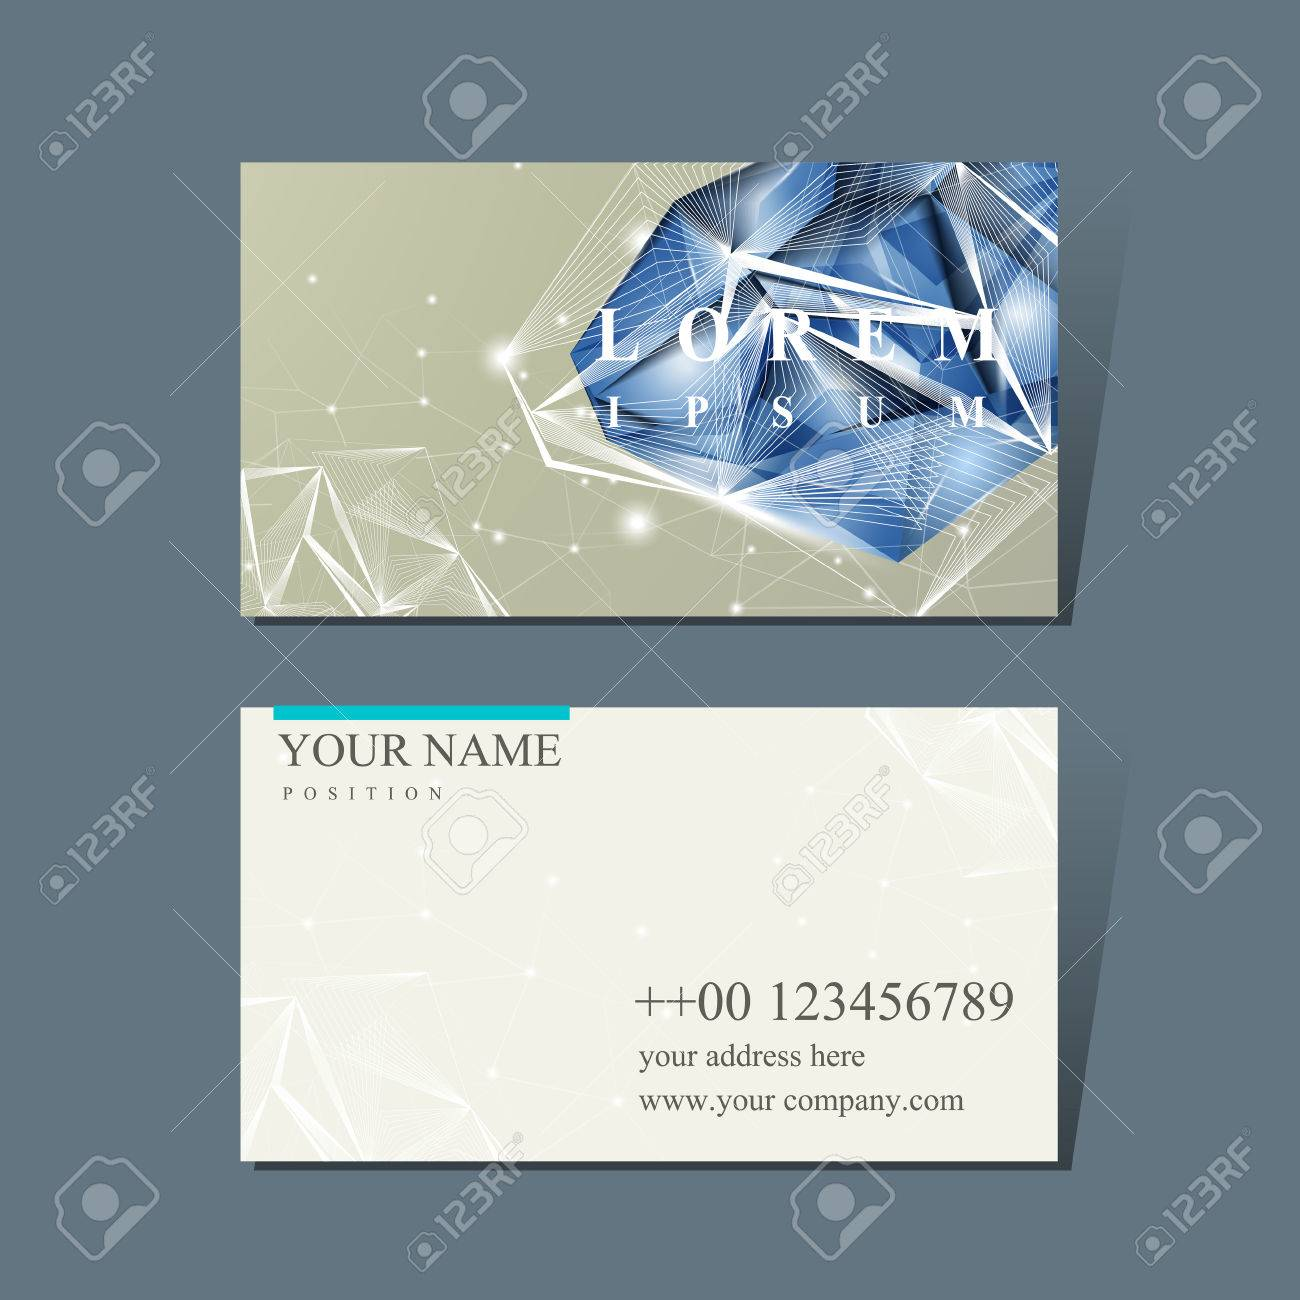 Design for business cards gallery free business cards modern design for business card with diamond element royalty free modern design for business card with magicingreecefo Choice Image